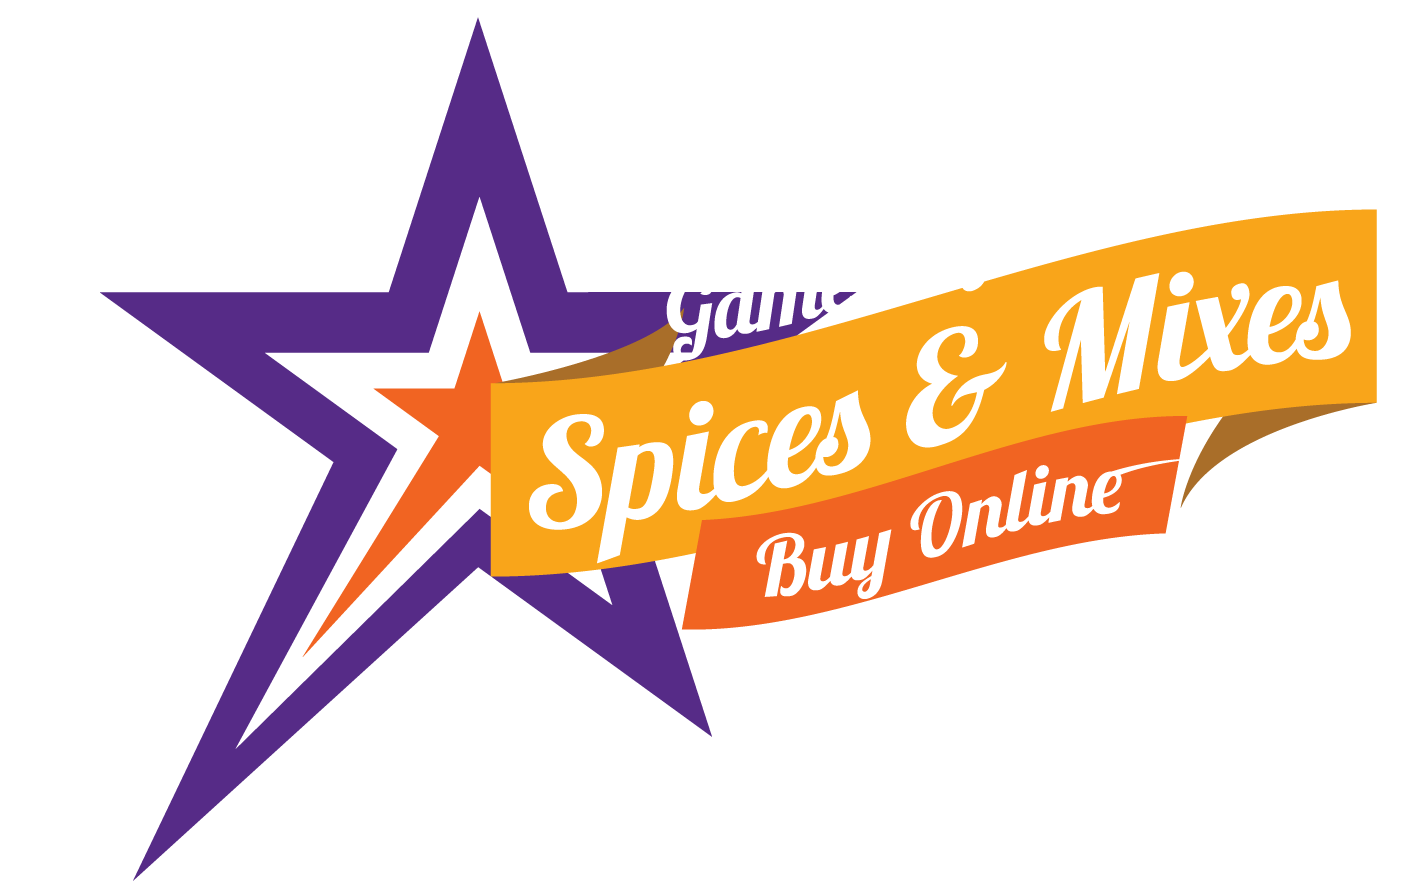 jambalaya mix and game day foods